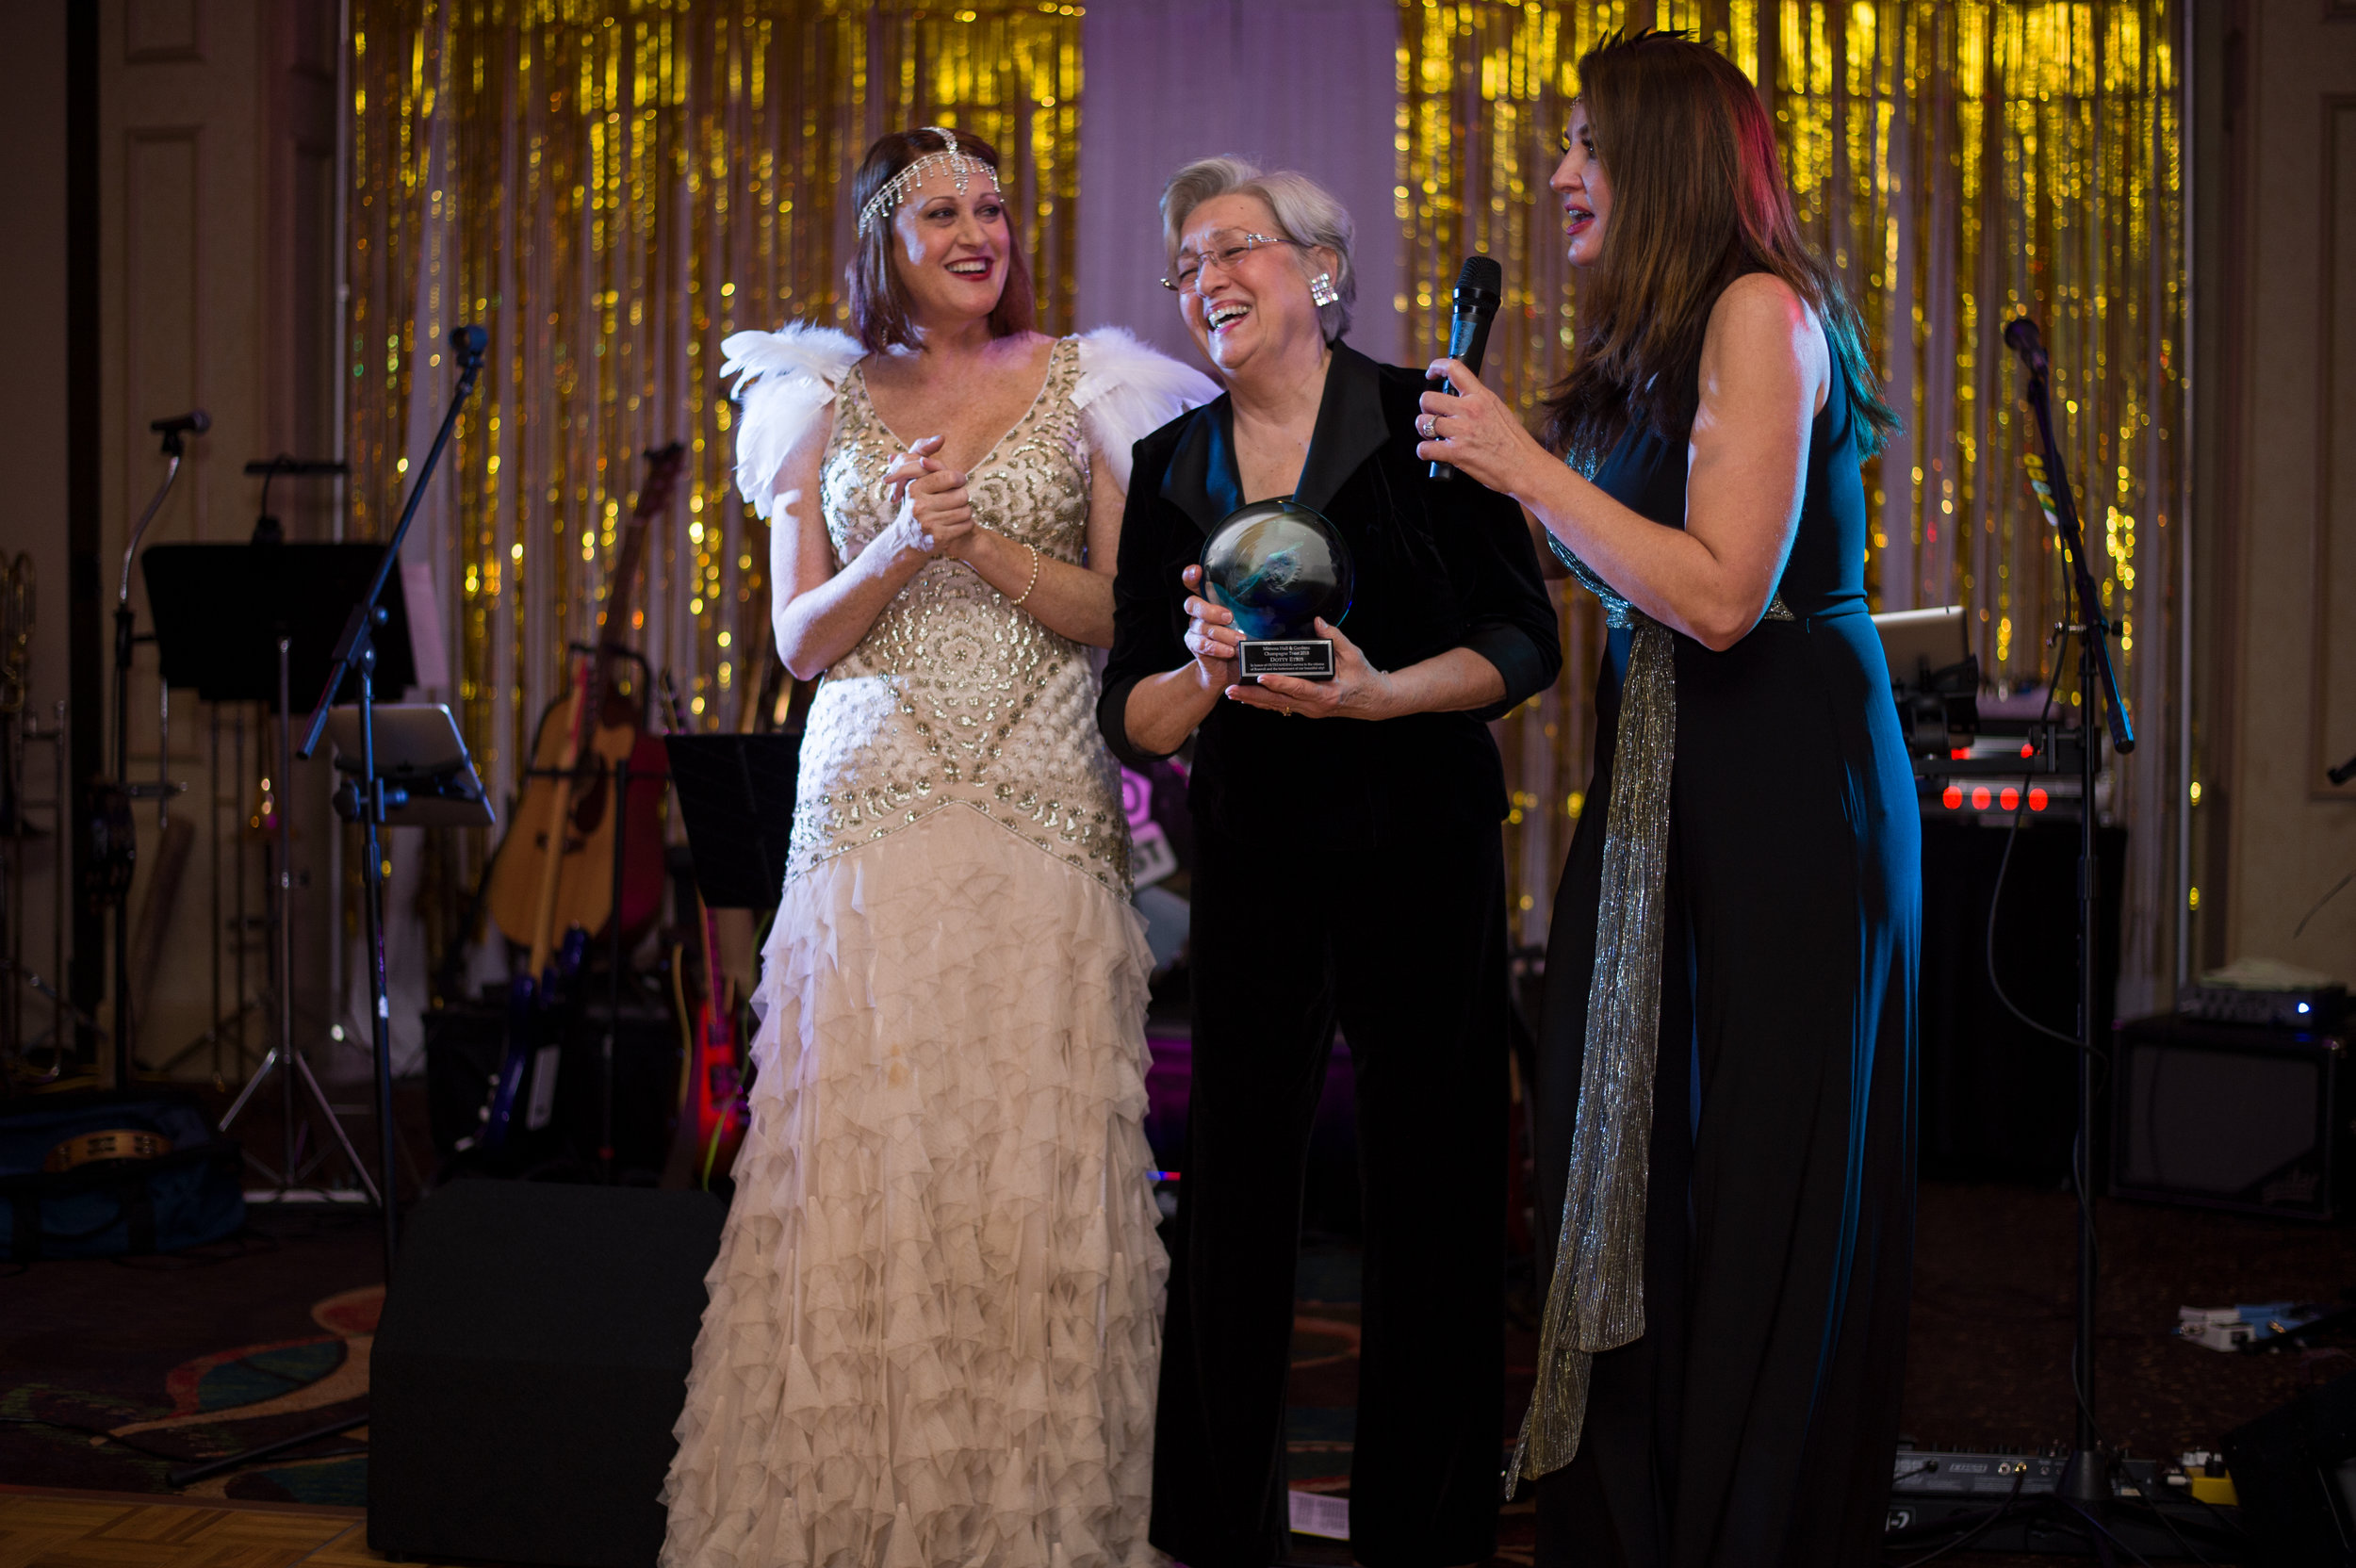 Photo: Dotty is shown here with Michelle Slater and Kelly Callen on Dec. 31, 2018 while receiving an award from the Friends of Mimosa Hall organization at the Great Gatsby Gala.